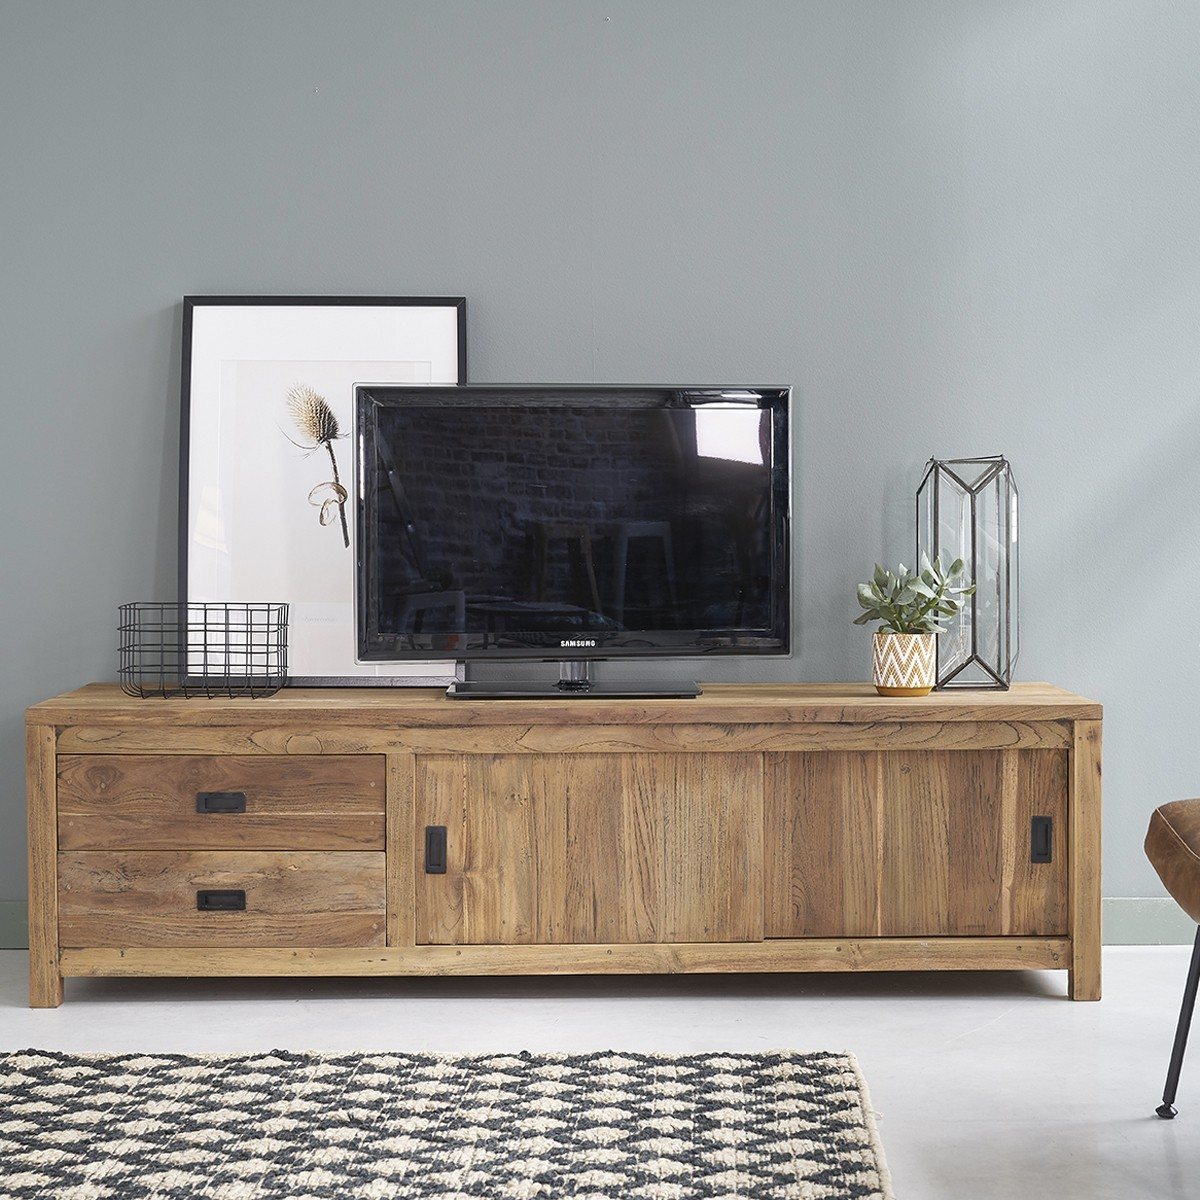 meuble tv en bois de teck recycl 180 cargo bois dessus. Black Bedroom Furniture Sets. Home Design Ideas